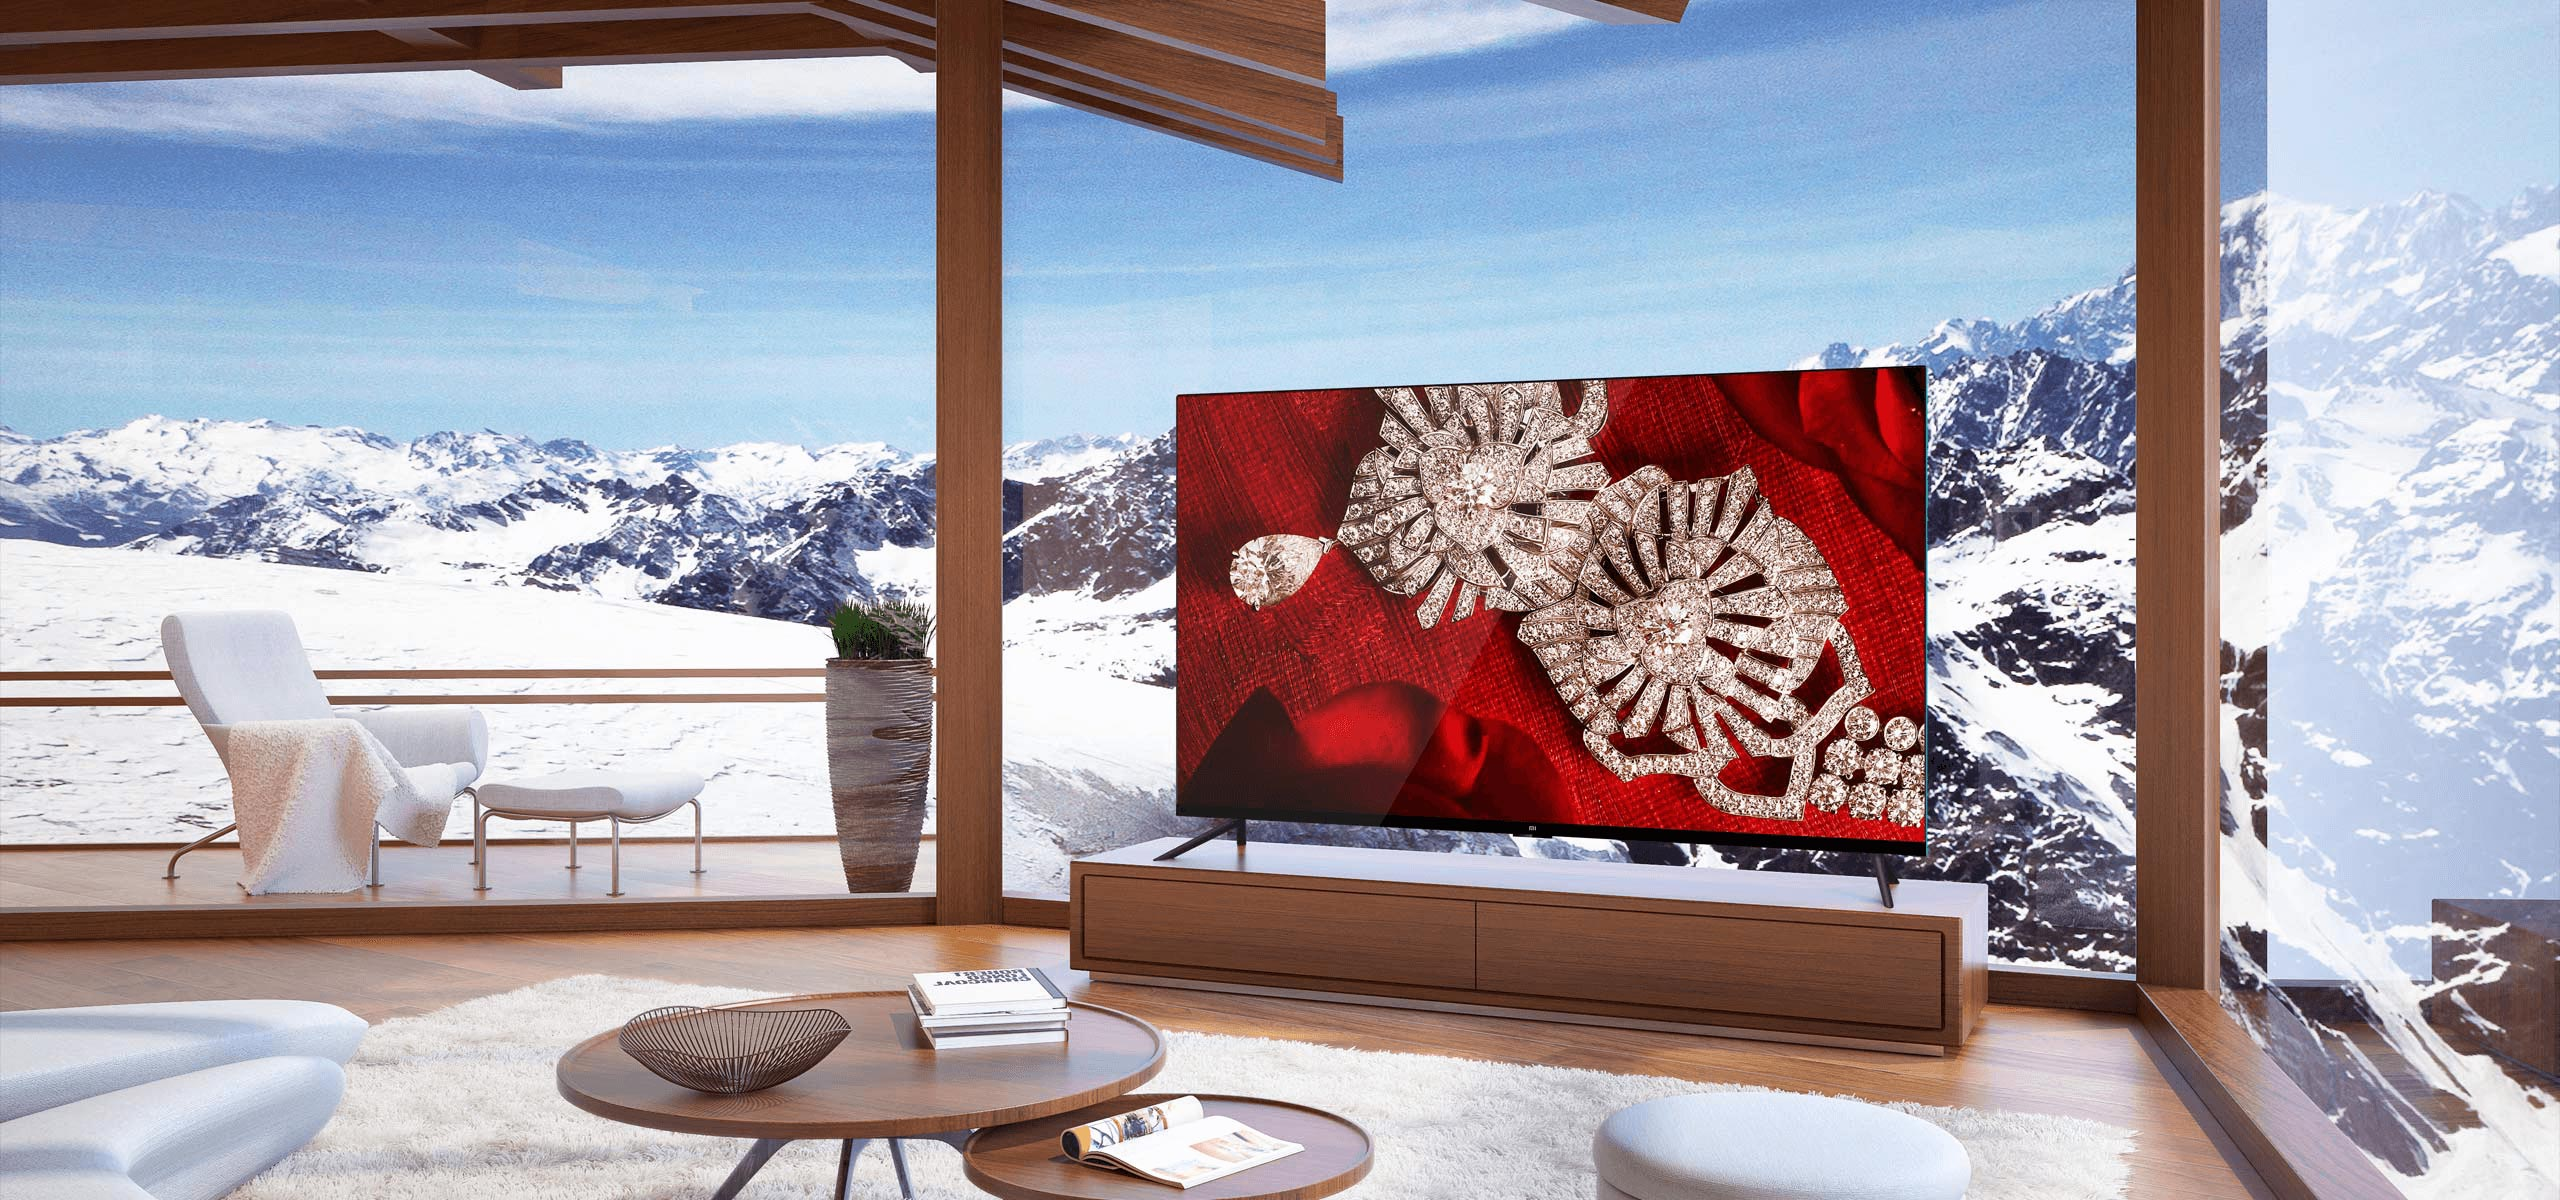 Xiaomi's Mi LED Smart TV 4: All you need to know